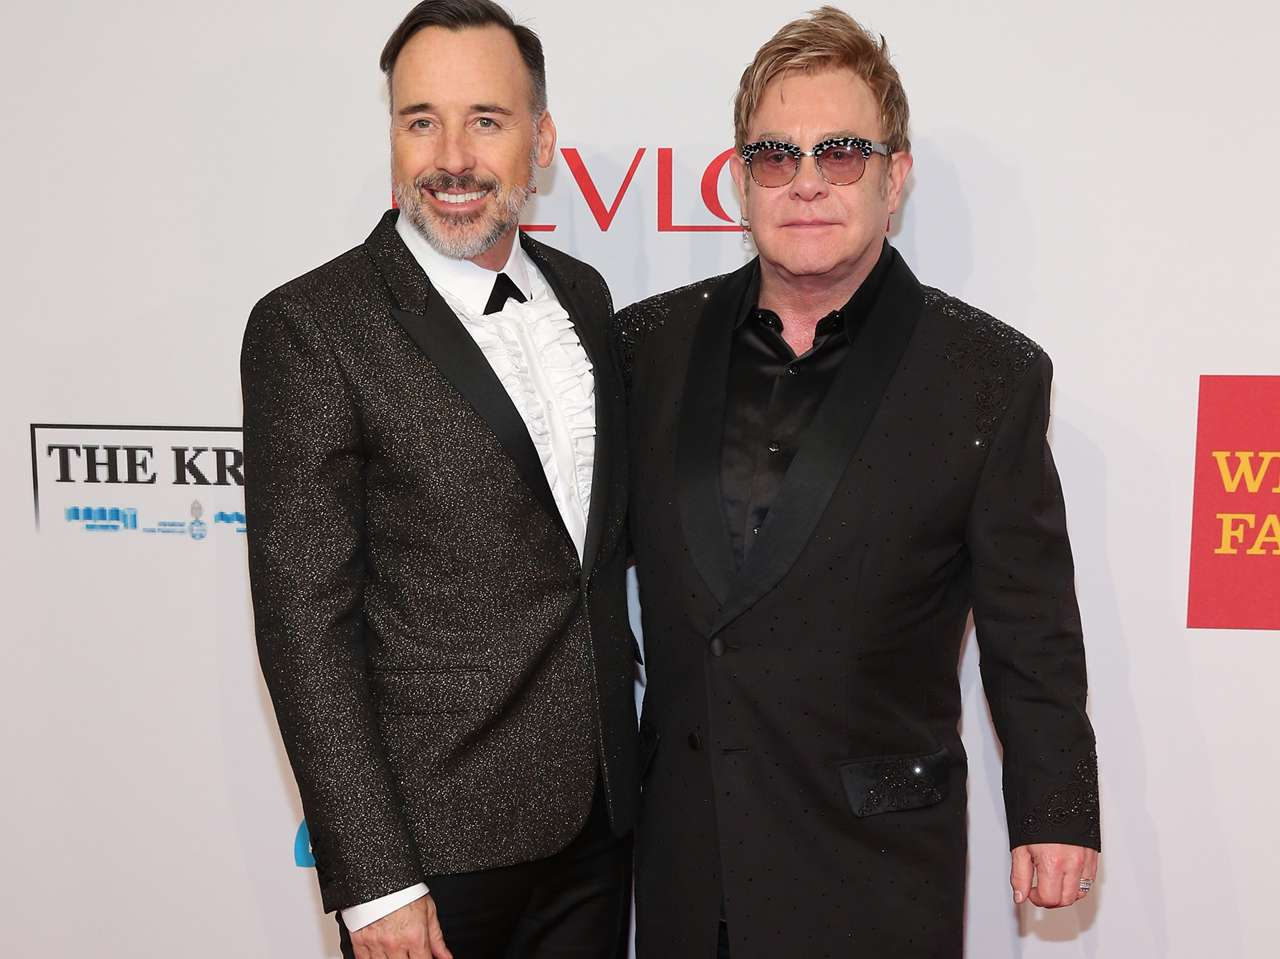 Elton John y David Furnish ya tienen dos hijos. Foto: Getty Images